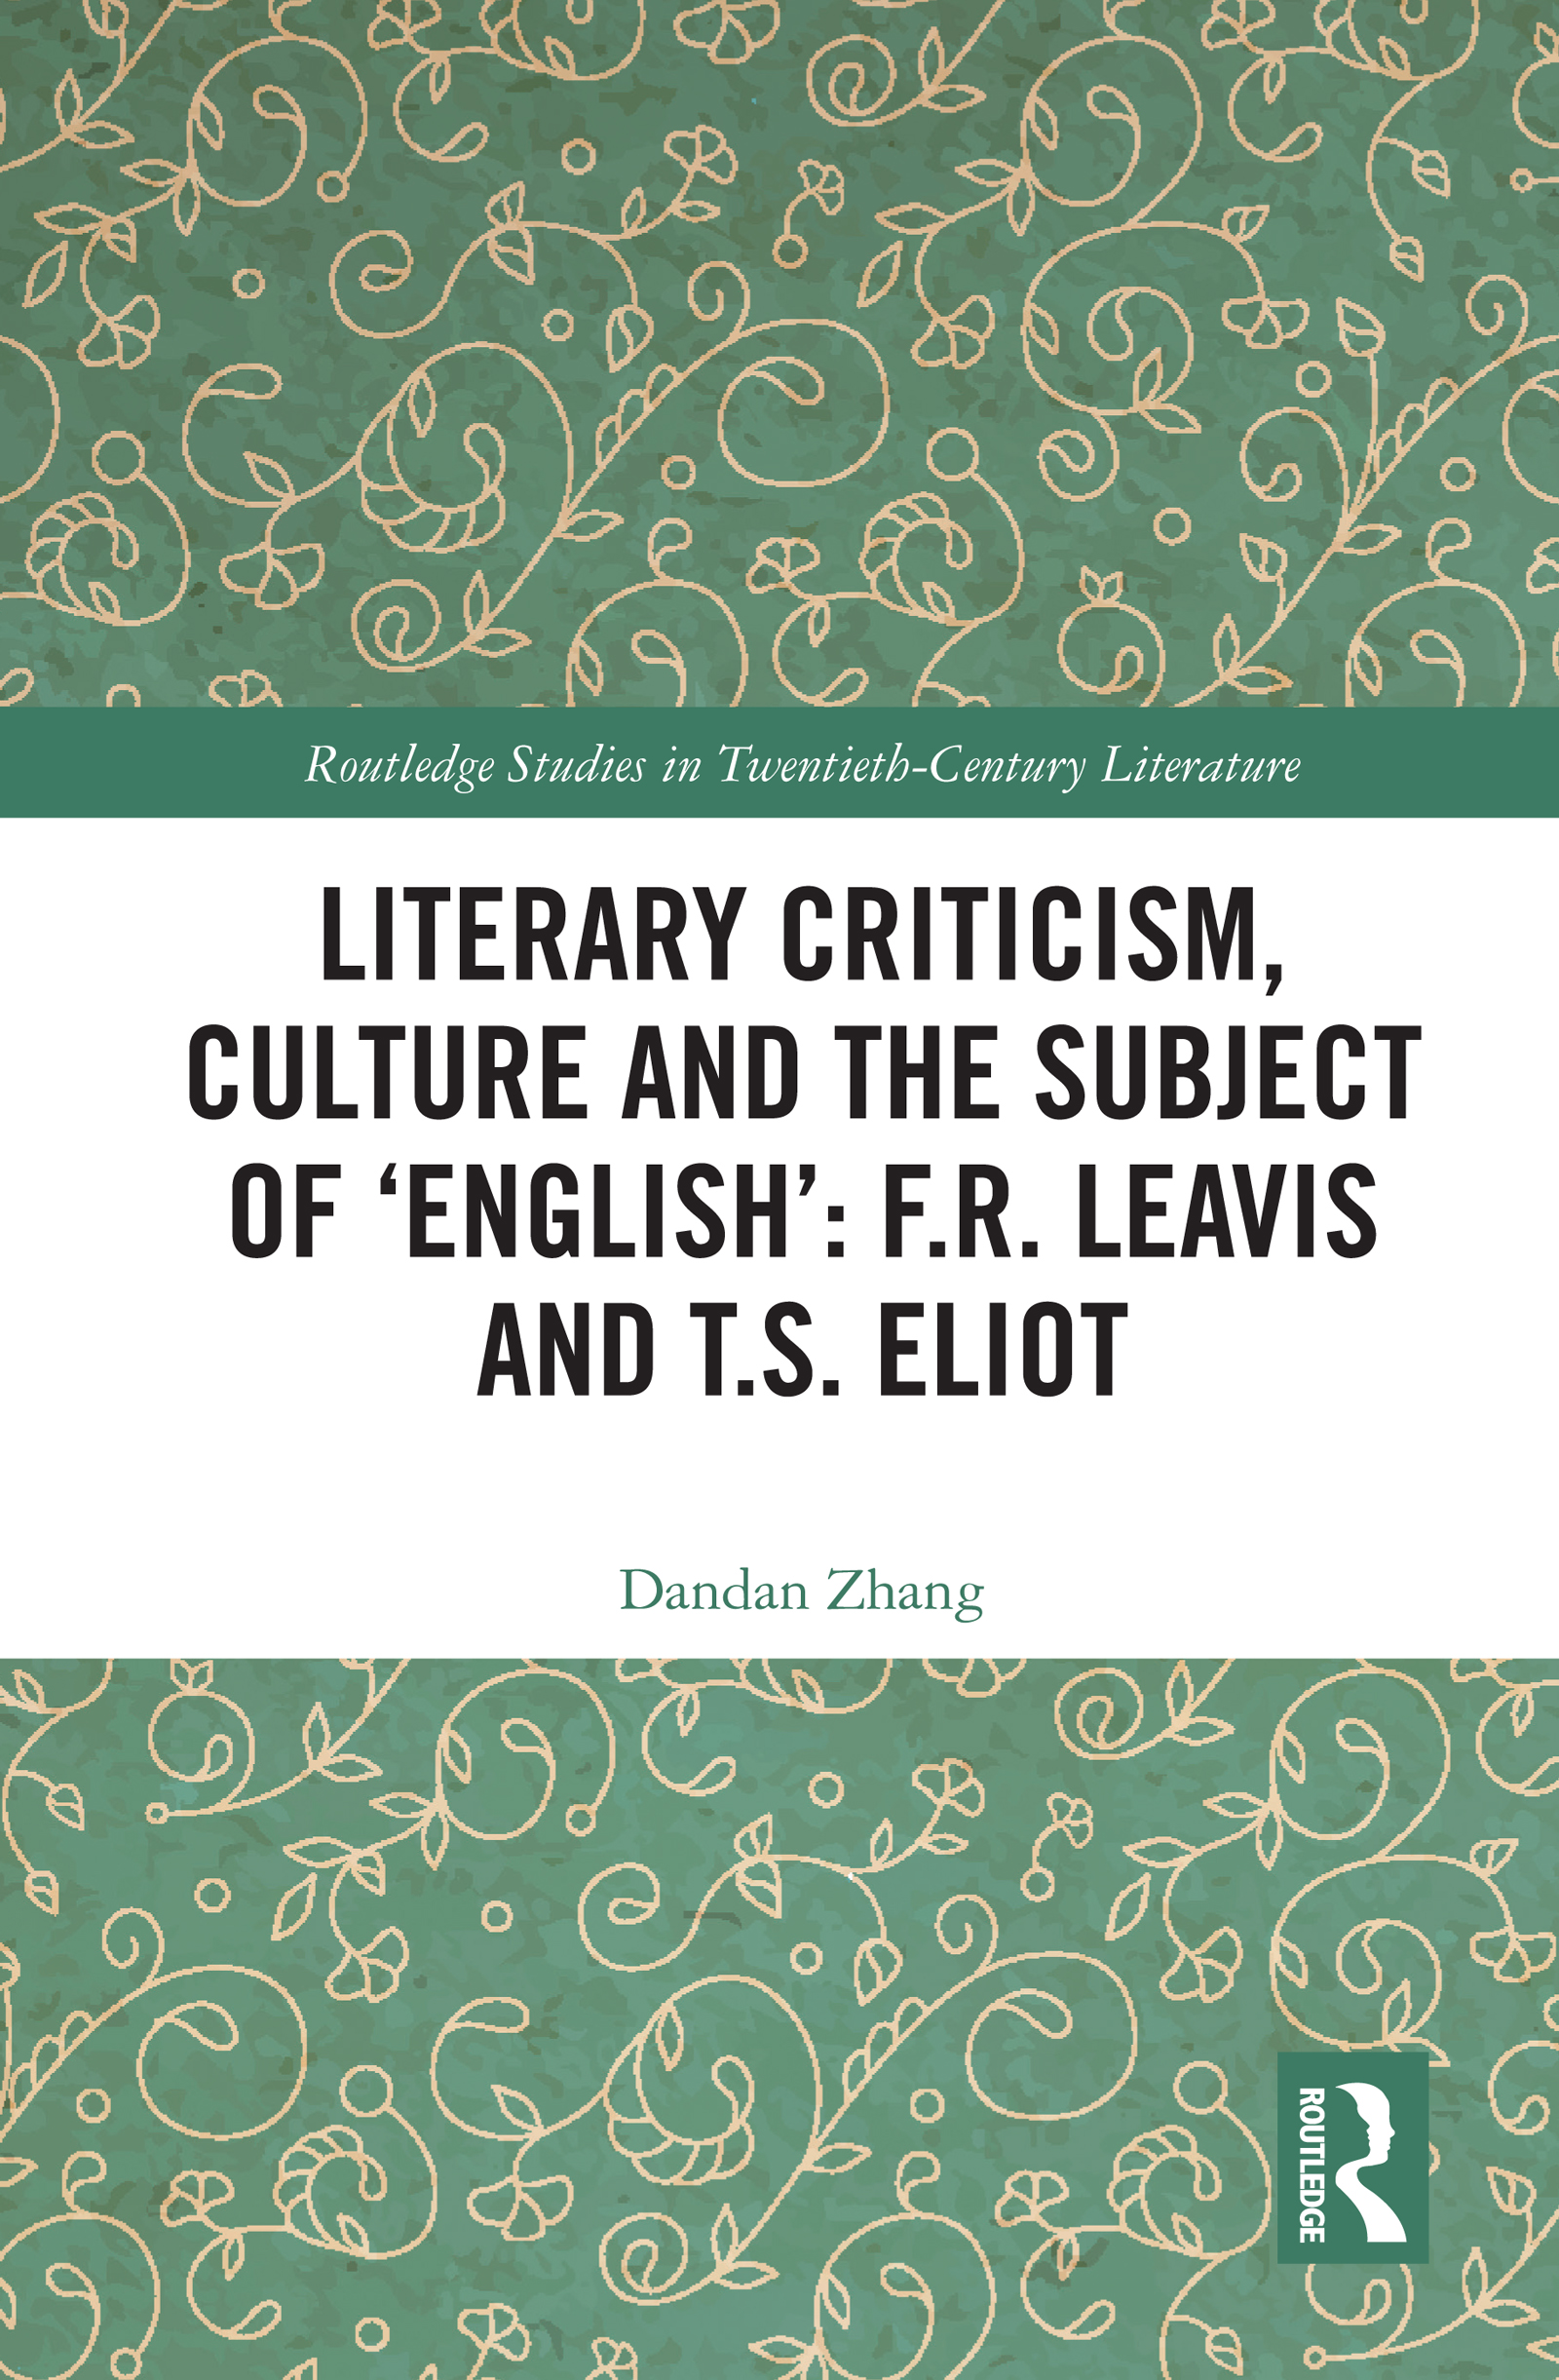 Literary Criticism, Culture and the Subject of 'English': F.R. Leavis and T.S. Eliot